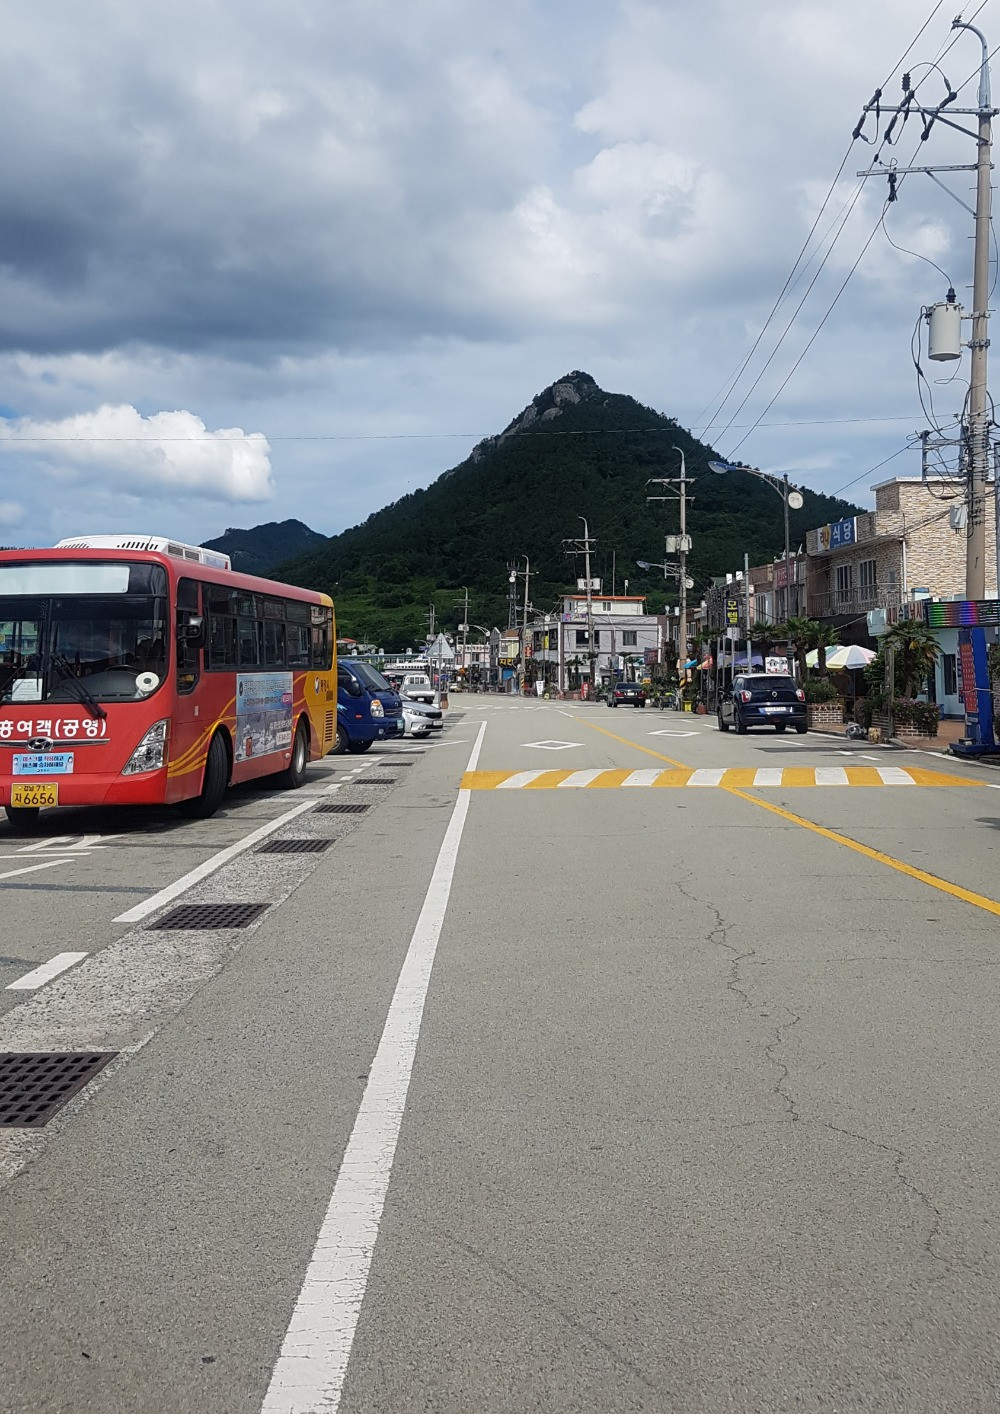 A bus in front of a mountain